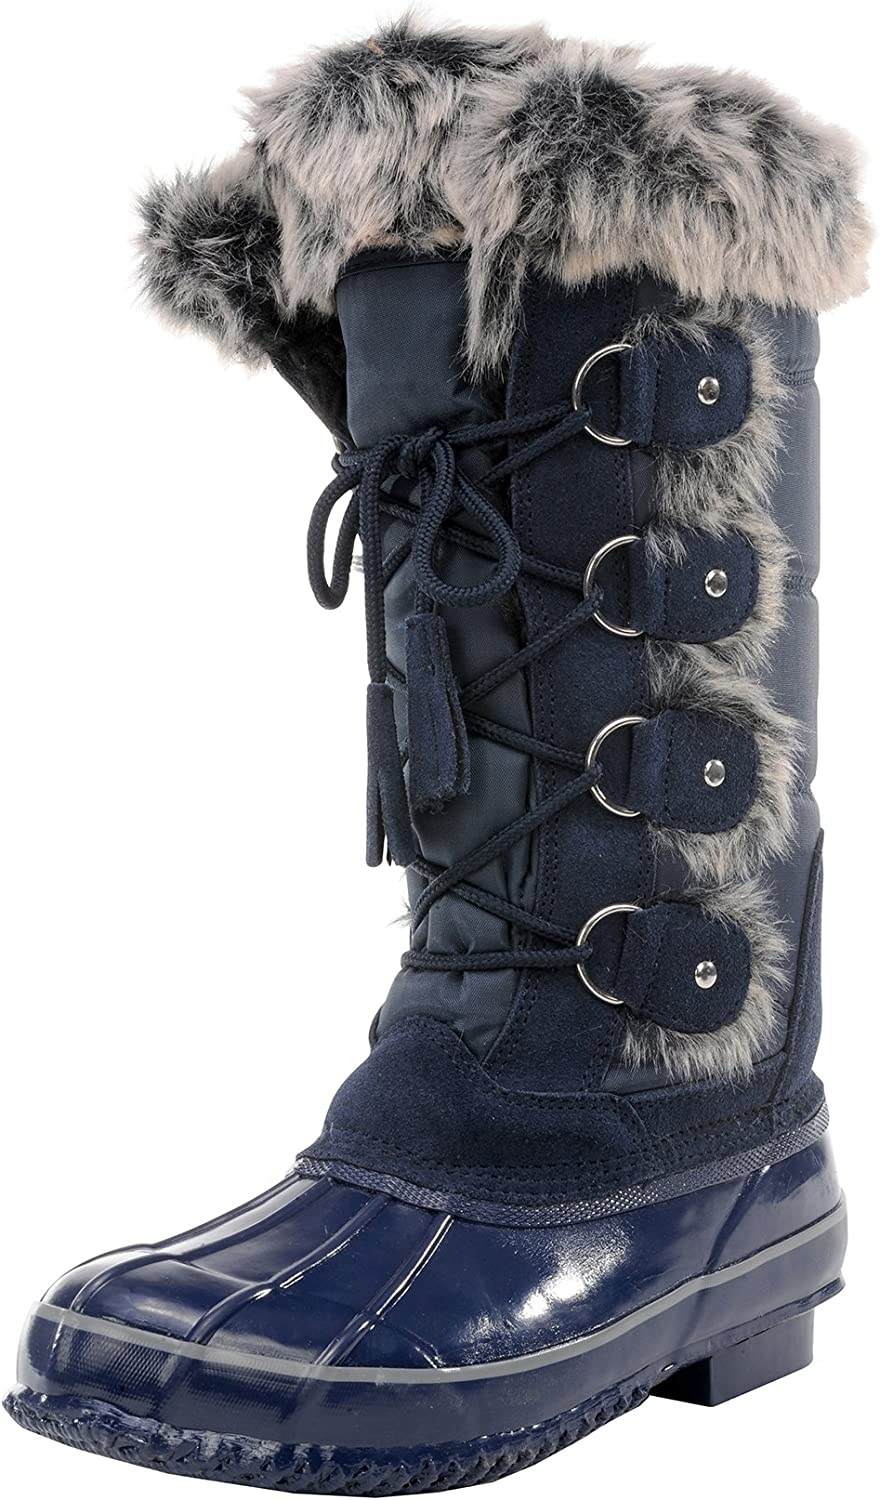 67% OFF of fixed price Sporto Women's Year-end gift Sleigh Boot Ride Snow